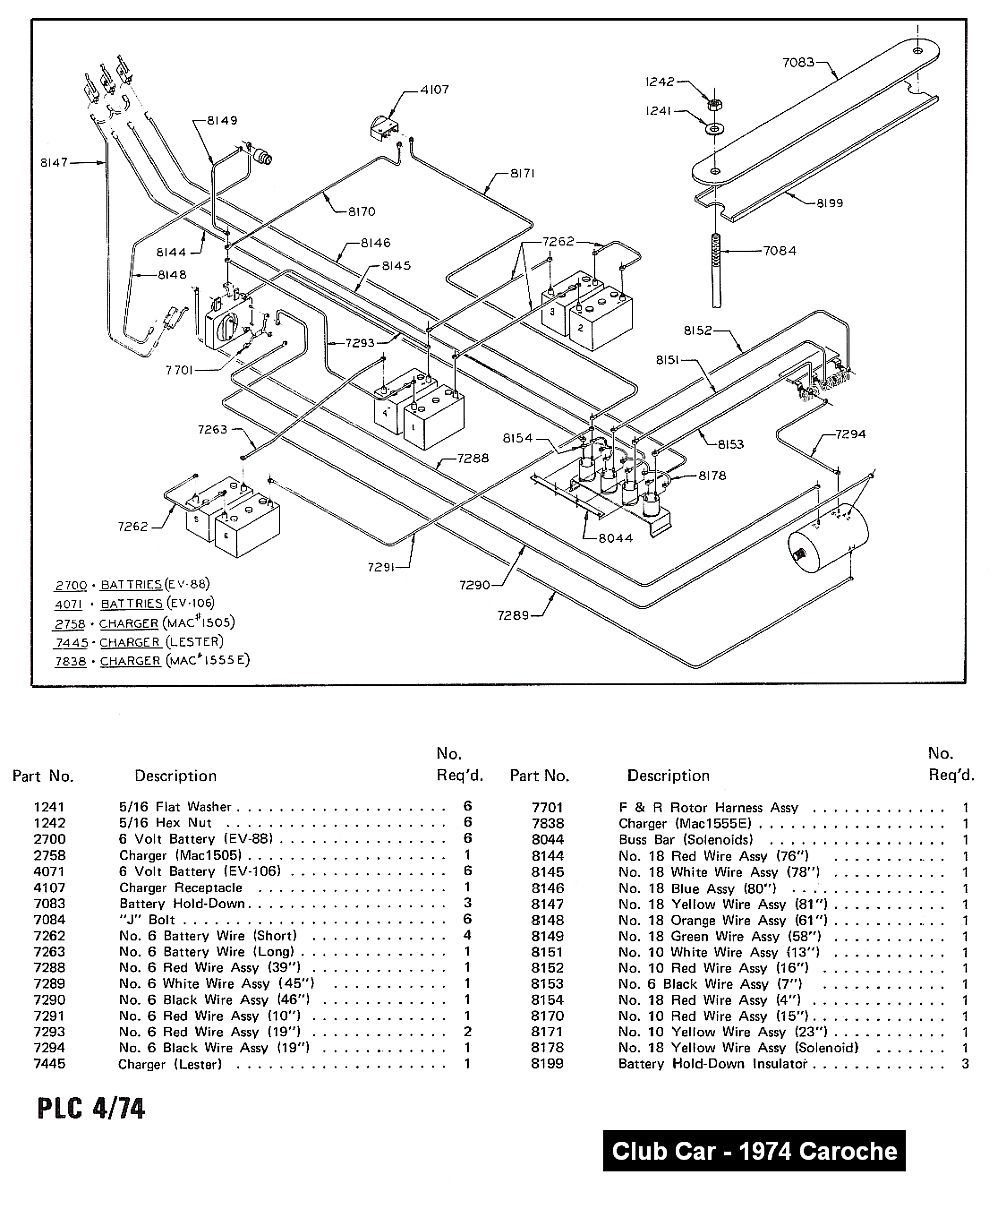 CC_74_Caroche wiring diagram for 36 volt club car golf cart the wiring diagram 817 e2 wiring diagram at suagrazia.org